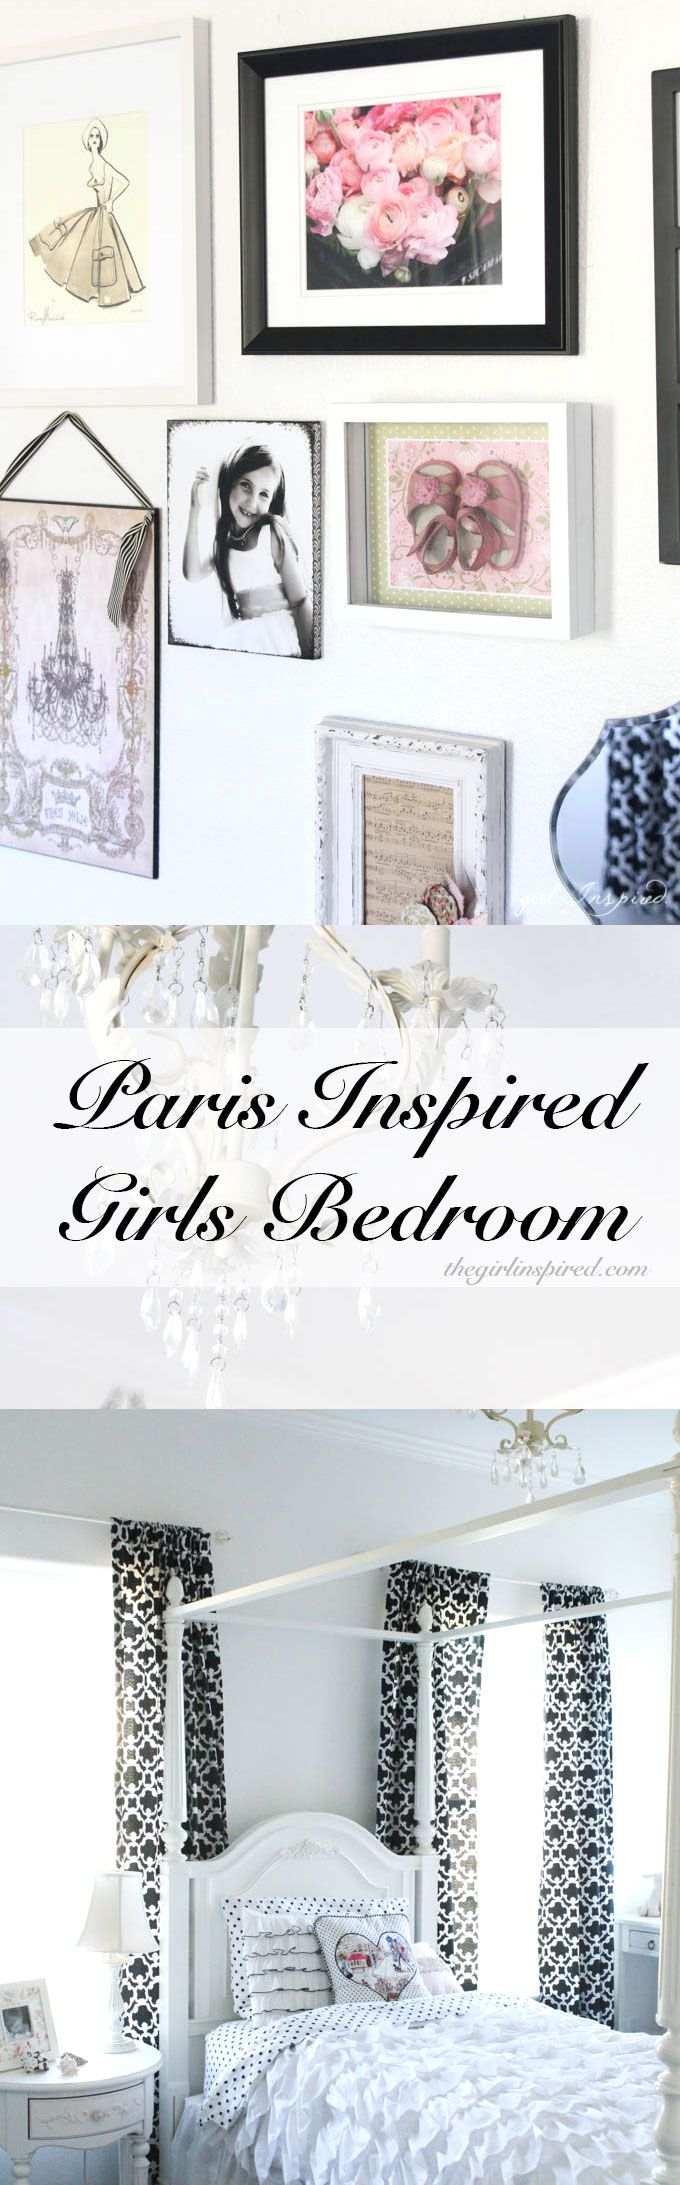 best 20 paris inspired bedroom ideas on pinterest paris bedroom paris inspired bedroom pretty girl s bedroom